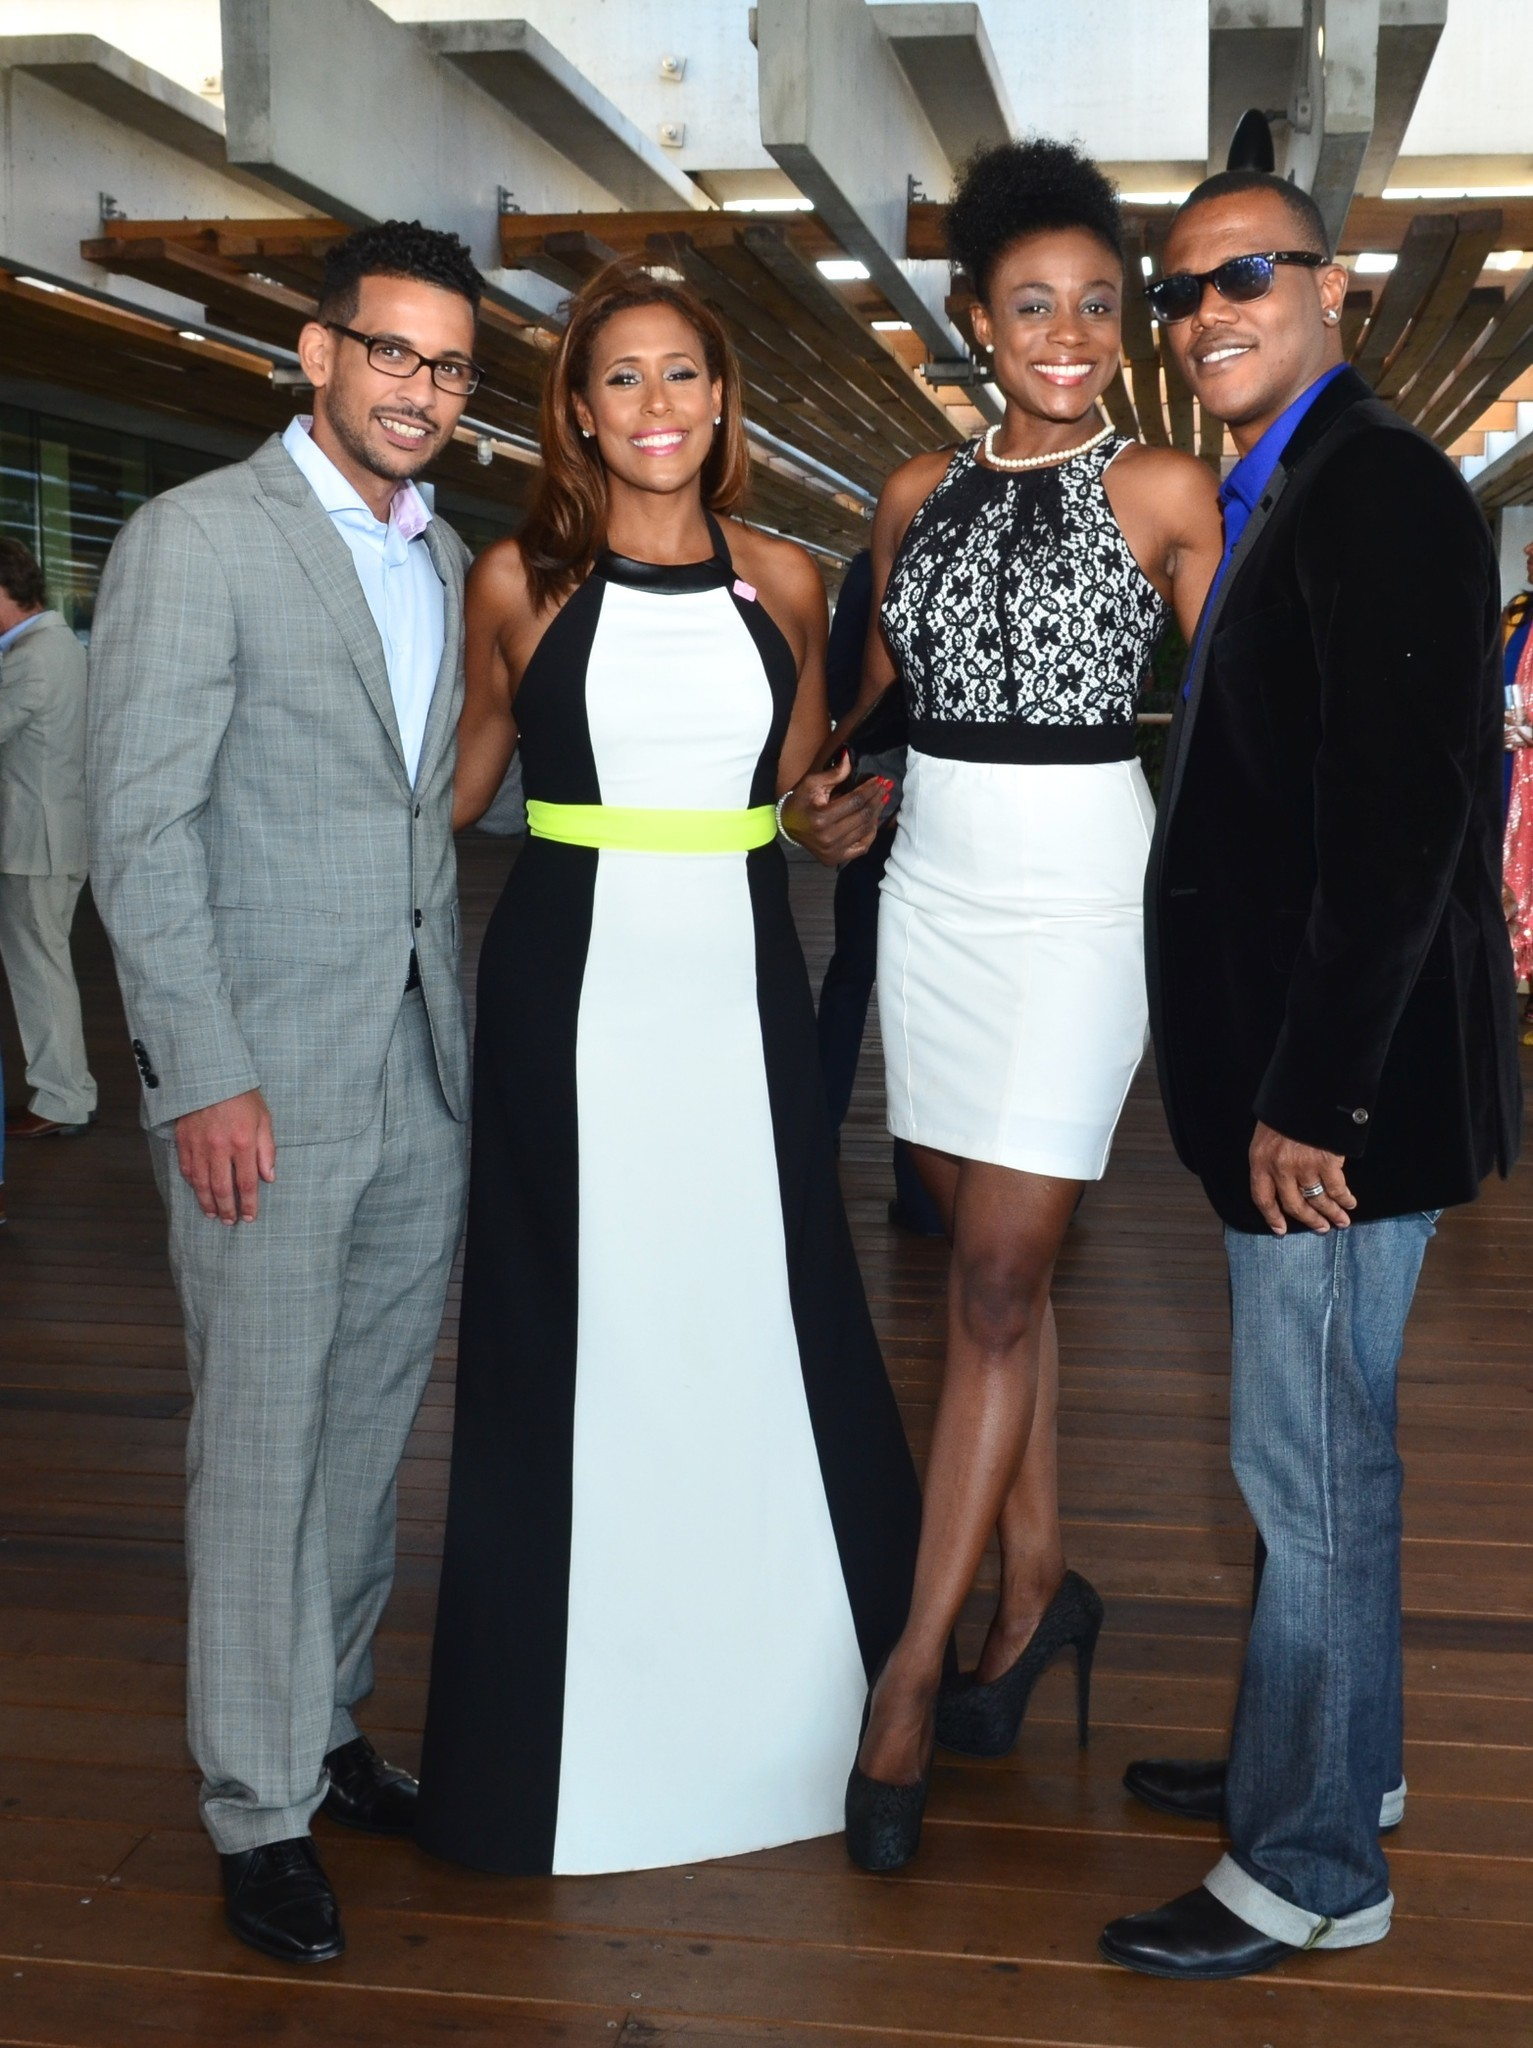 Society Scene photos - Asa Sealy, Neki Mohan, Jackie and Kevin Lyttle